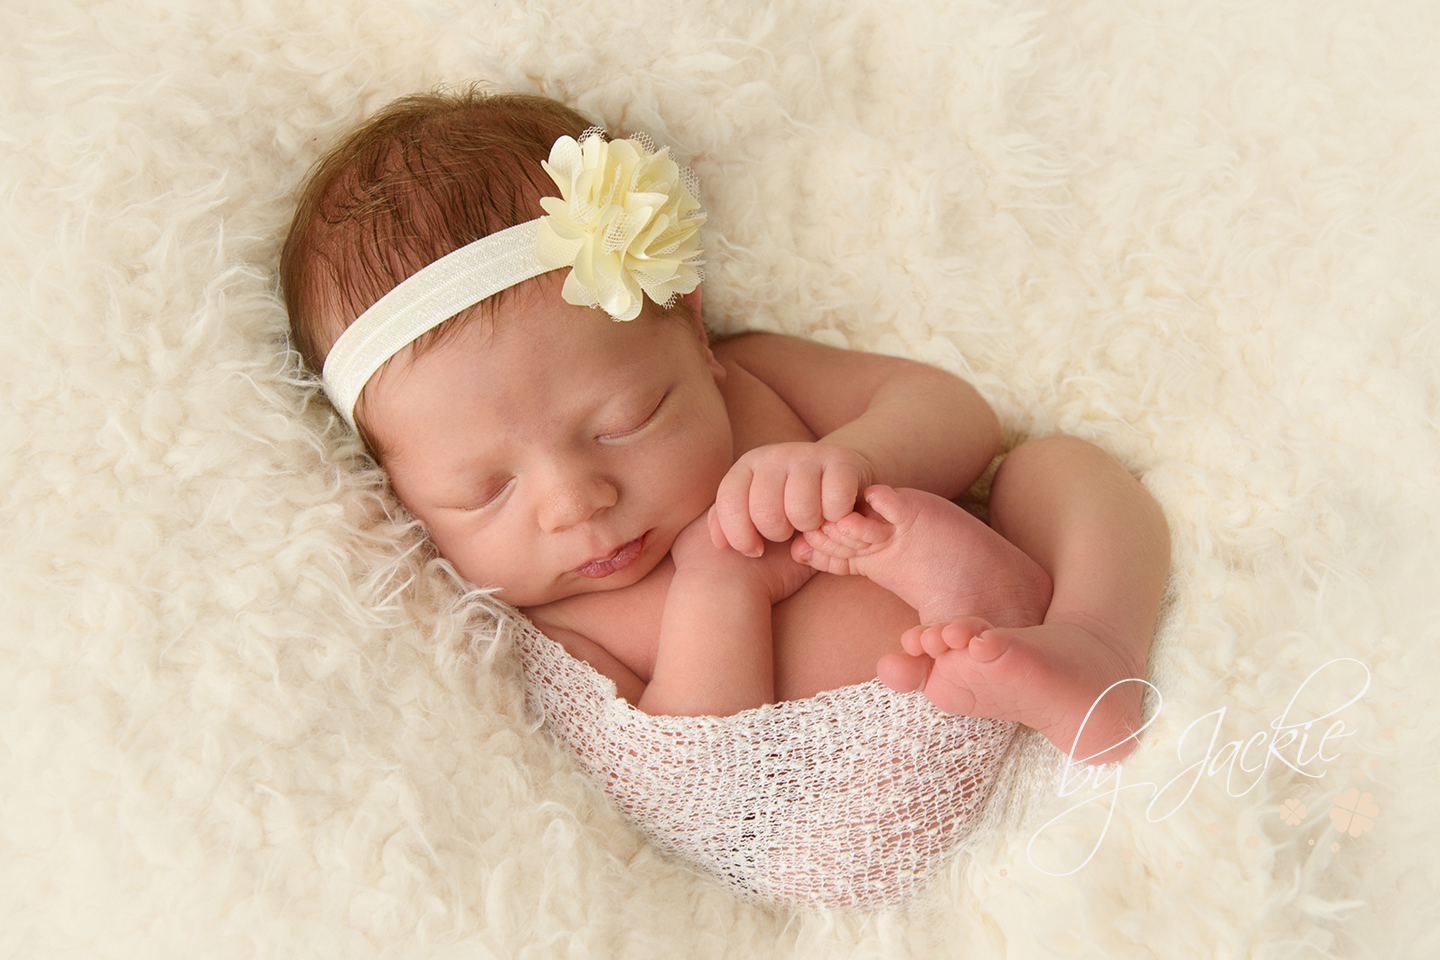 Baby girl asleep in soft cream blanket by Babies By Jackie Photography in Market Weighton near York, North Yorkshire, UK